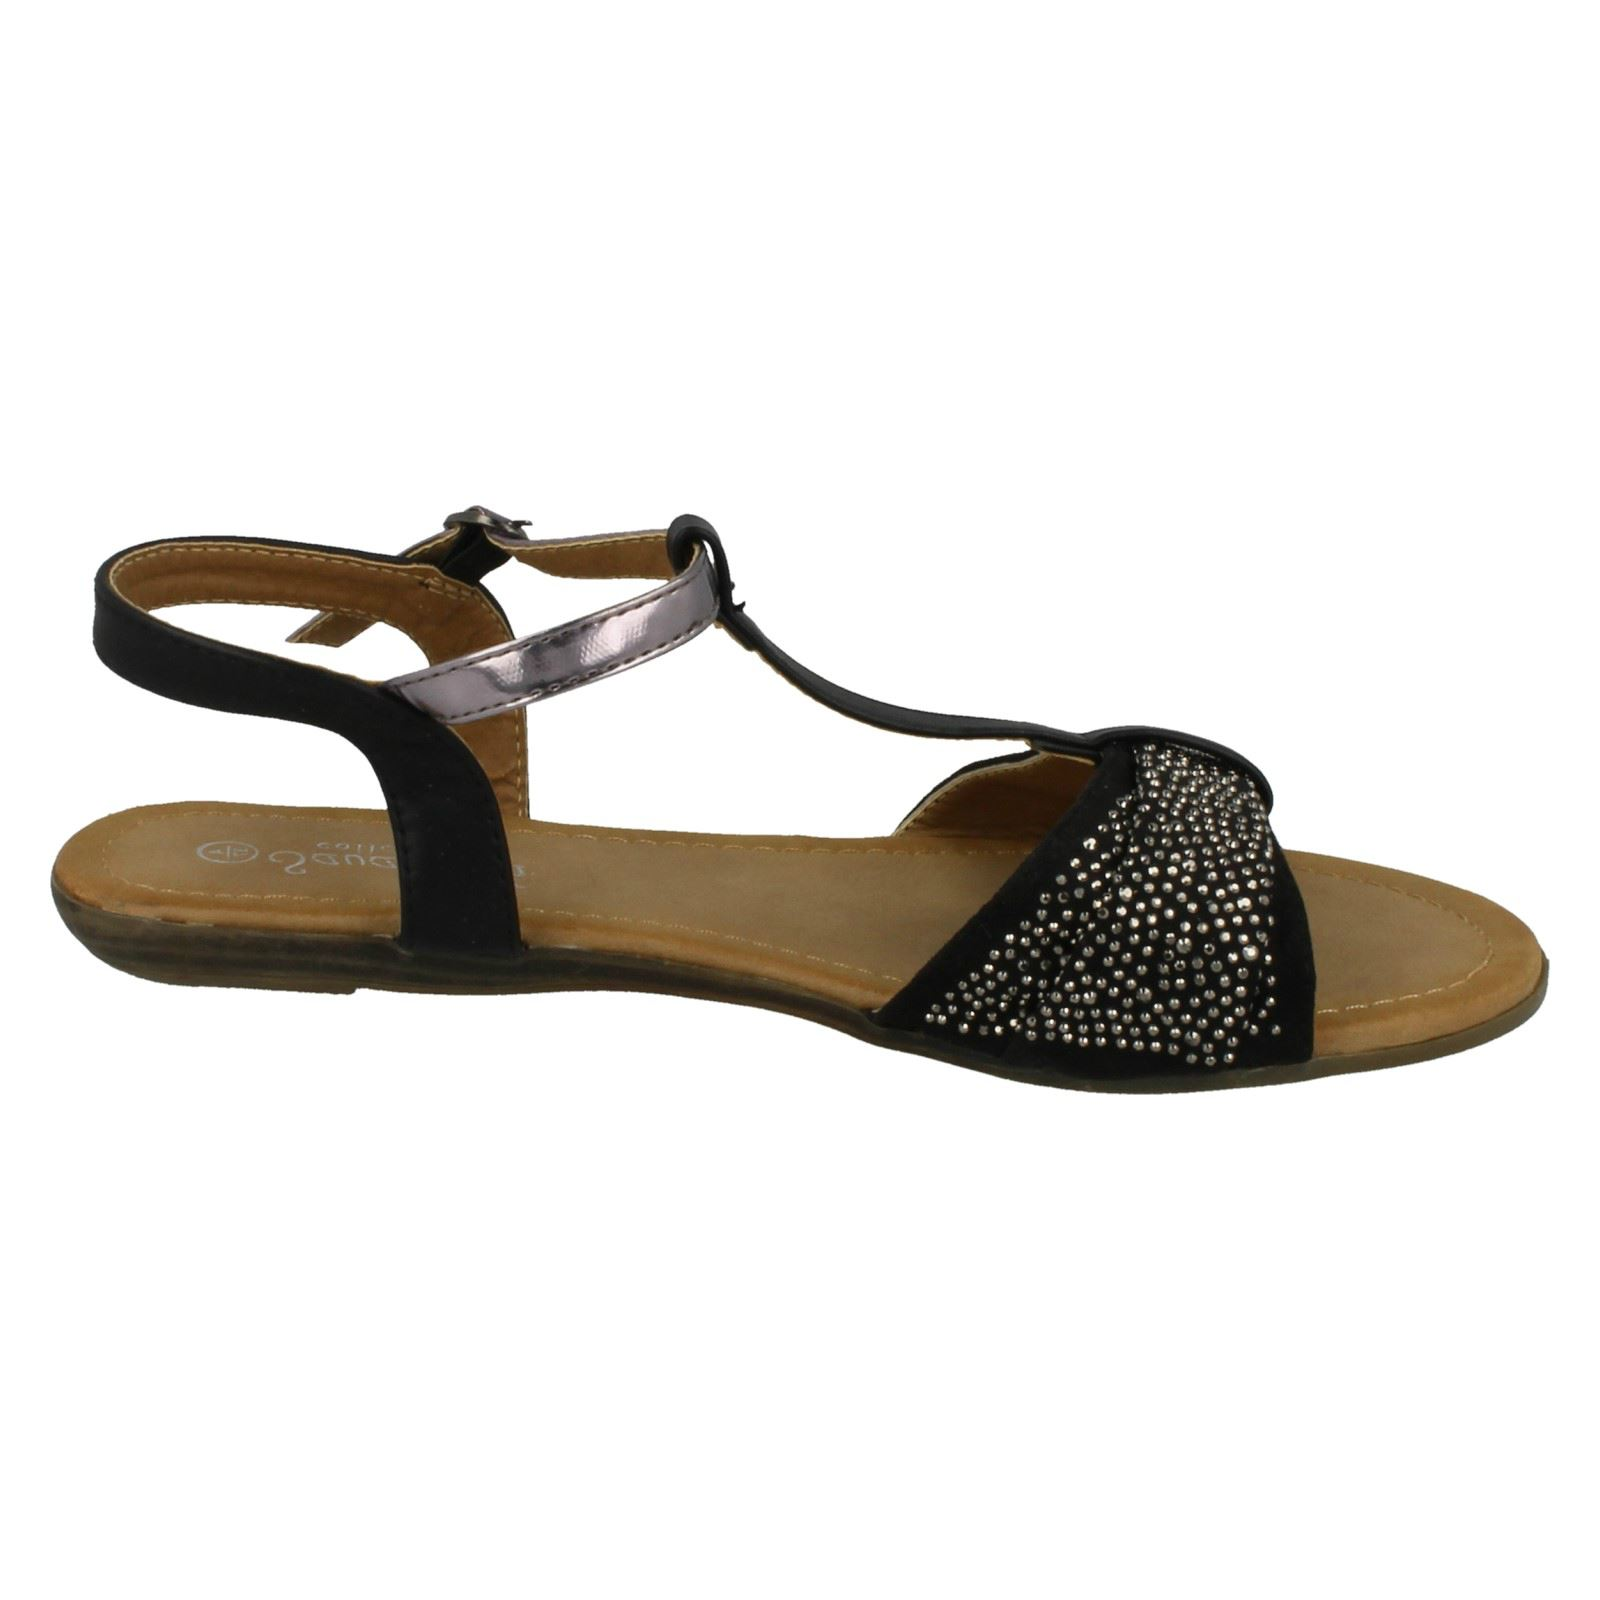 Details about Savannah Ladies T Bar Beaded Bow Vamp Sandals